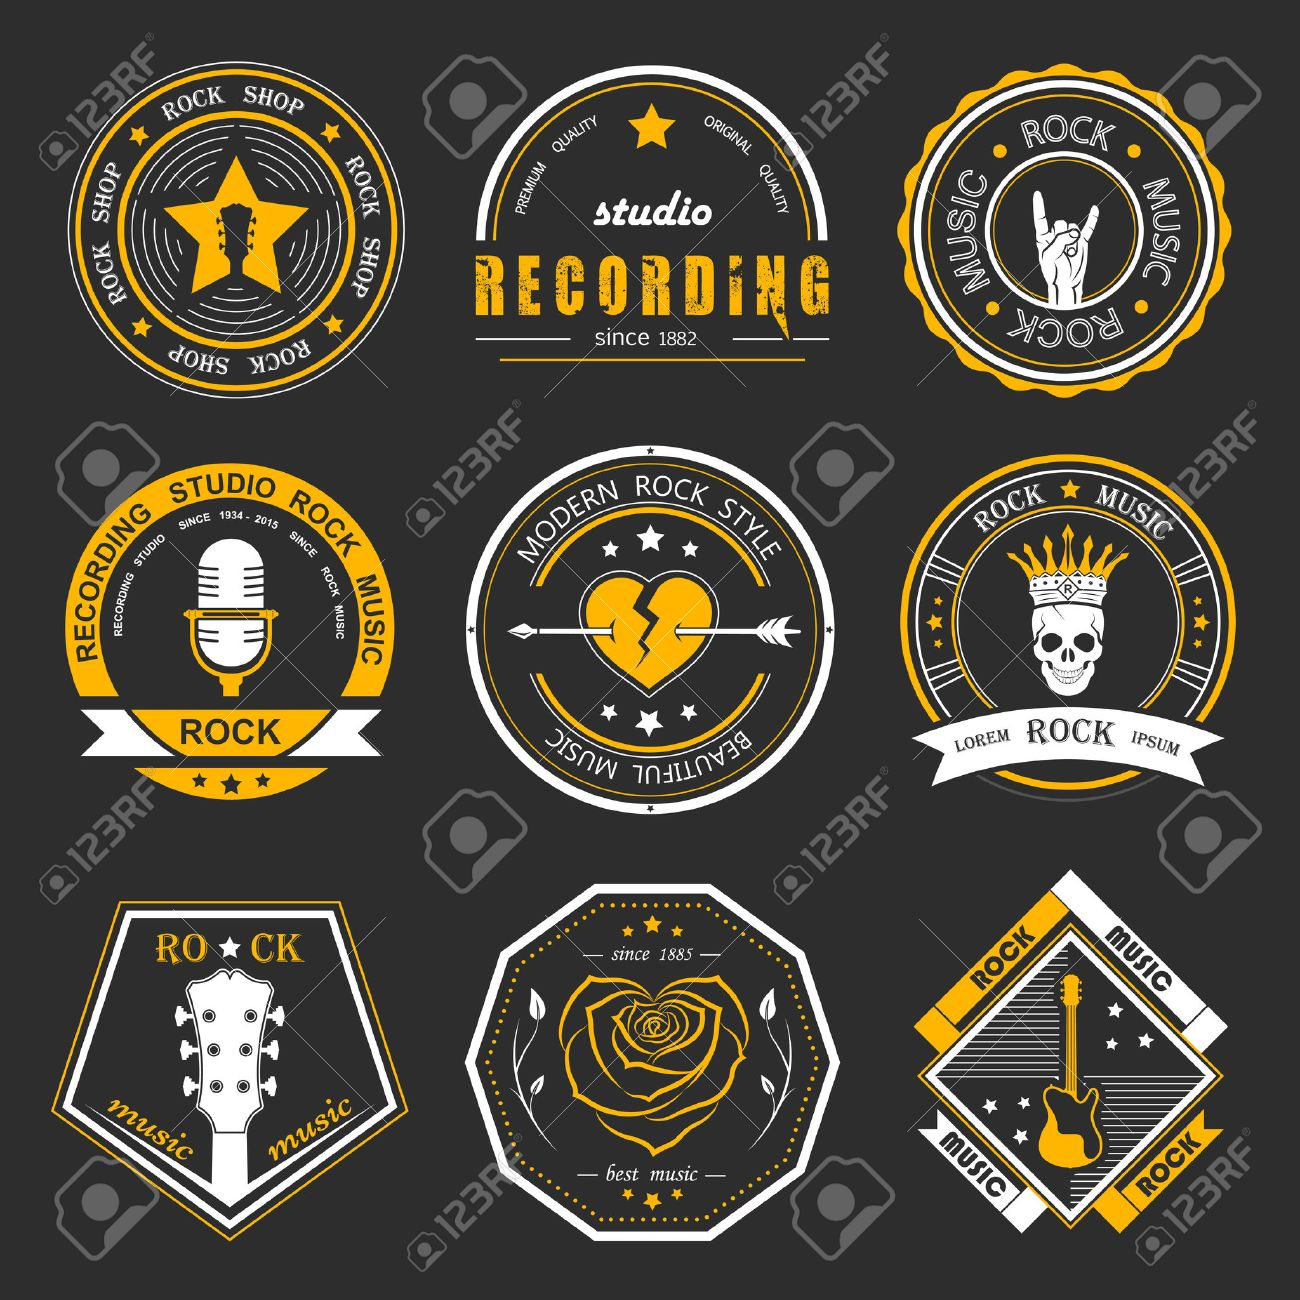 Shirt design elements - Set Of Rock Music And Recording Studios Music Design Elements With Font Type And Illustration